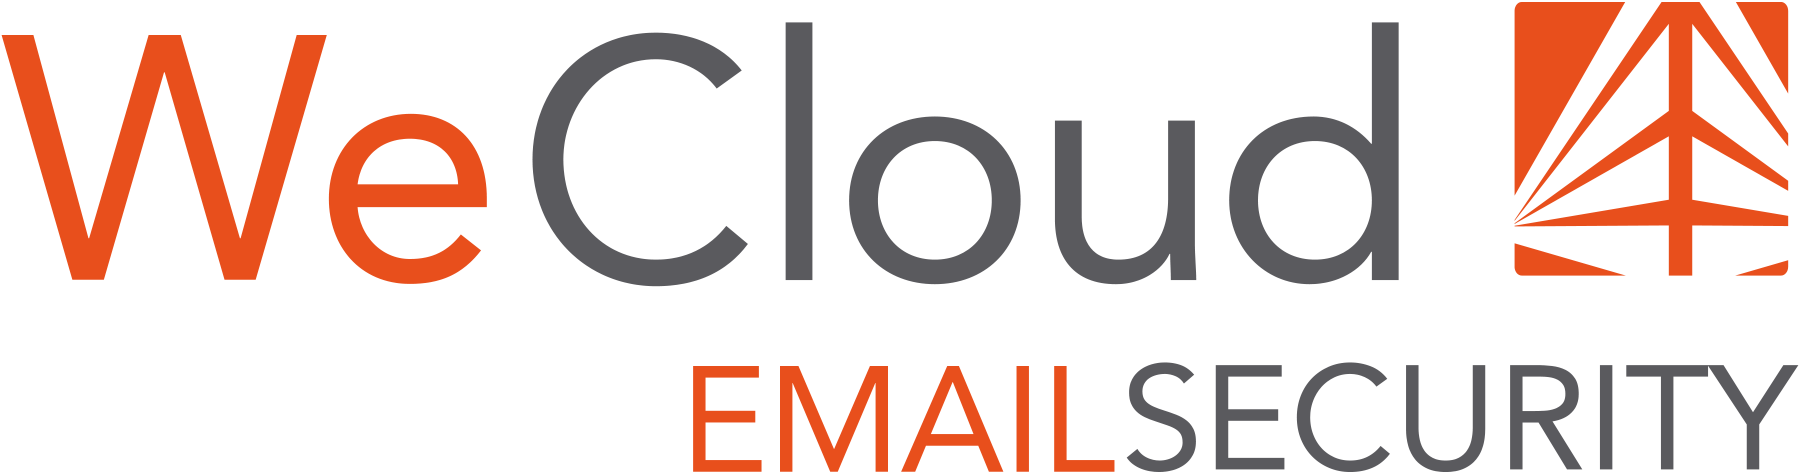 WeCloud-logo-EmailSecurity.png